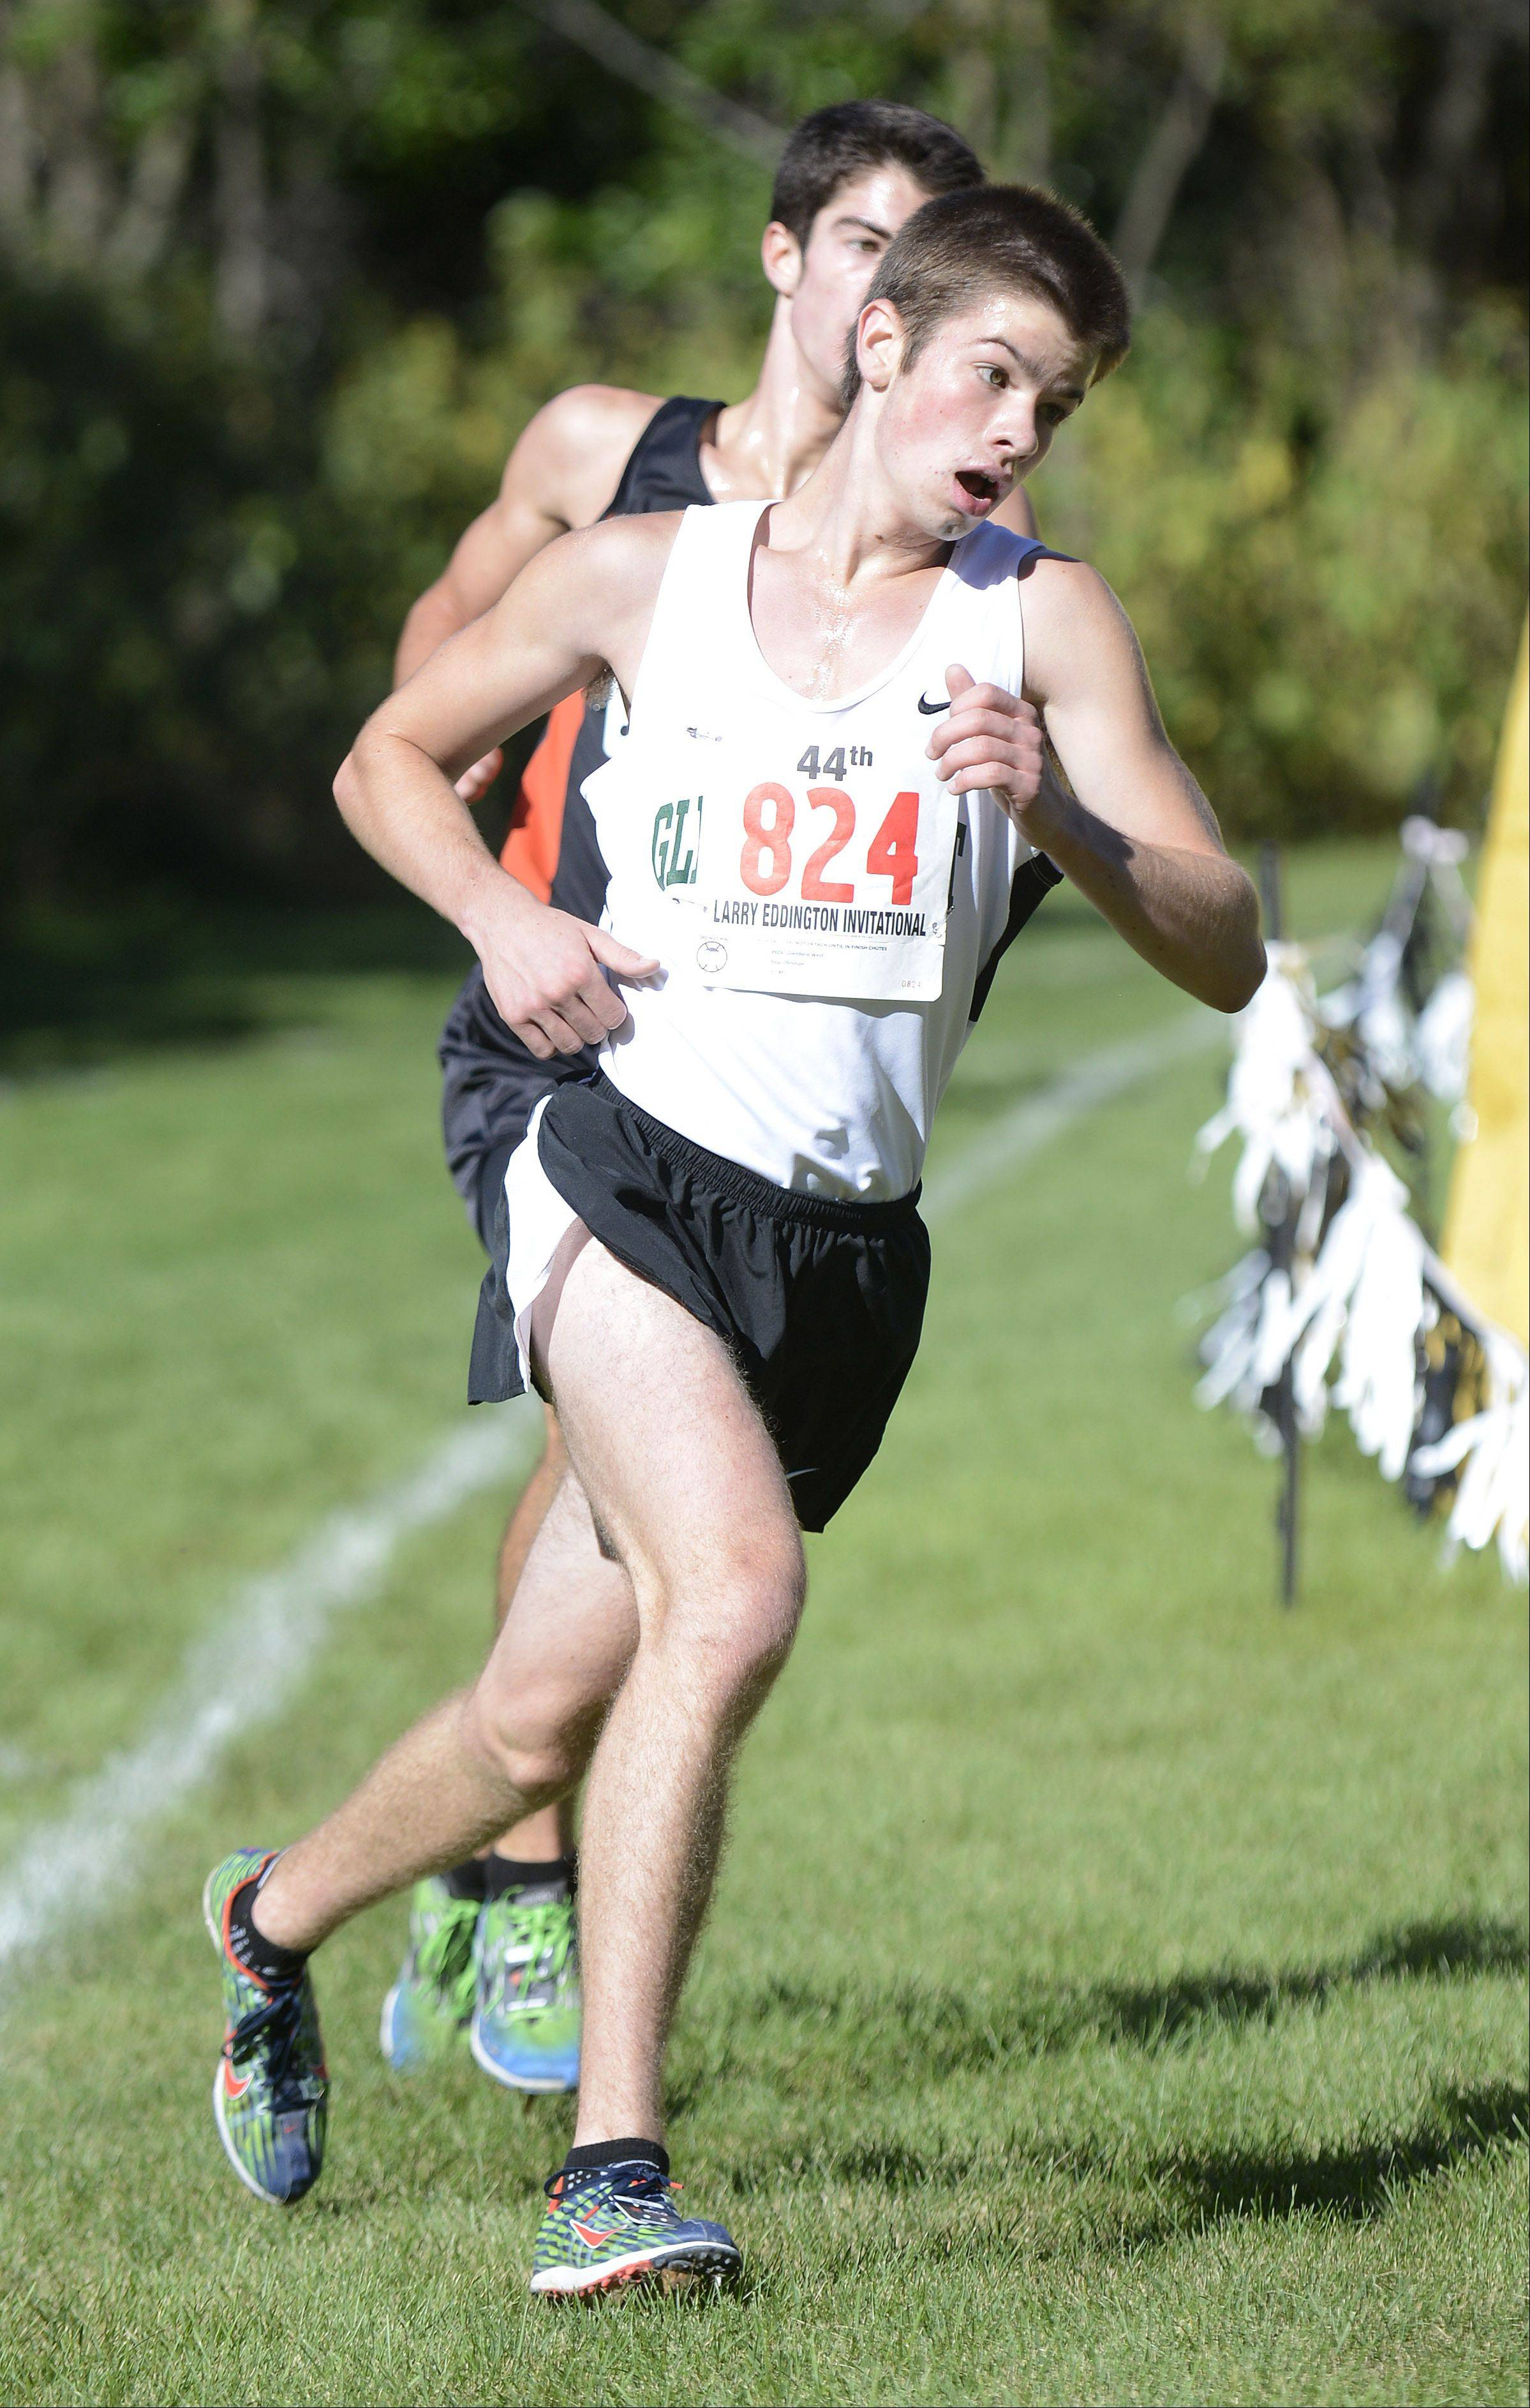 Glenbard West's Paul Christian makes the final turn towards the finish line to take third place at the Kaneland Invitational cross country meet in Elburn on Saturday, September 21.